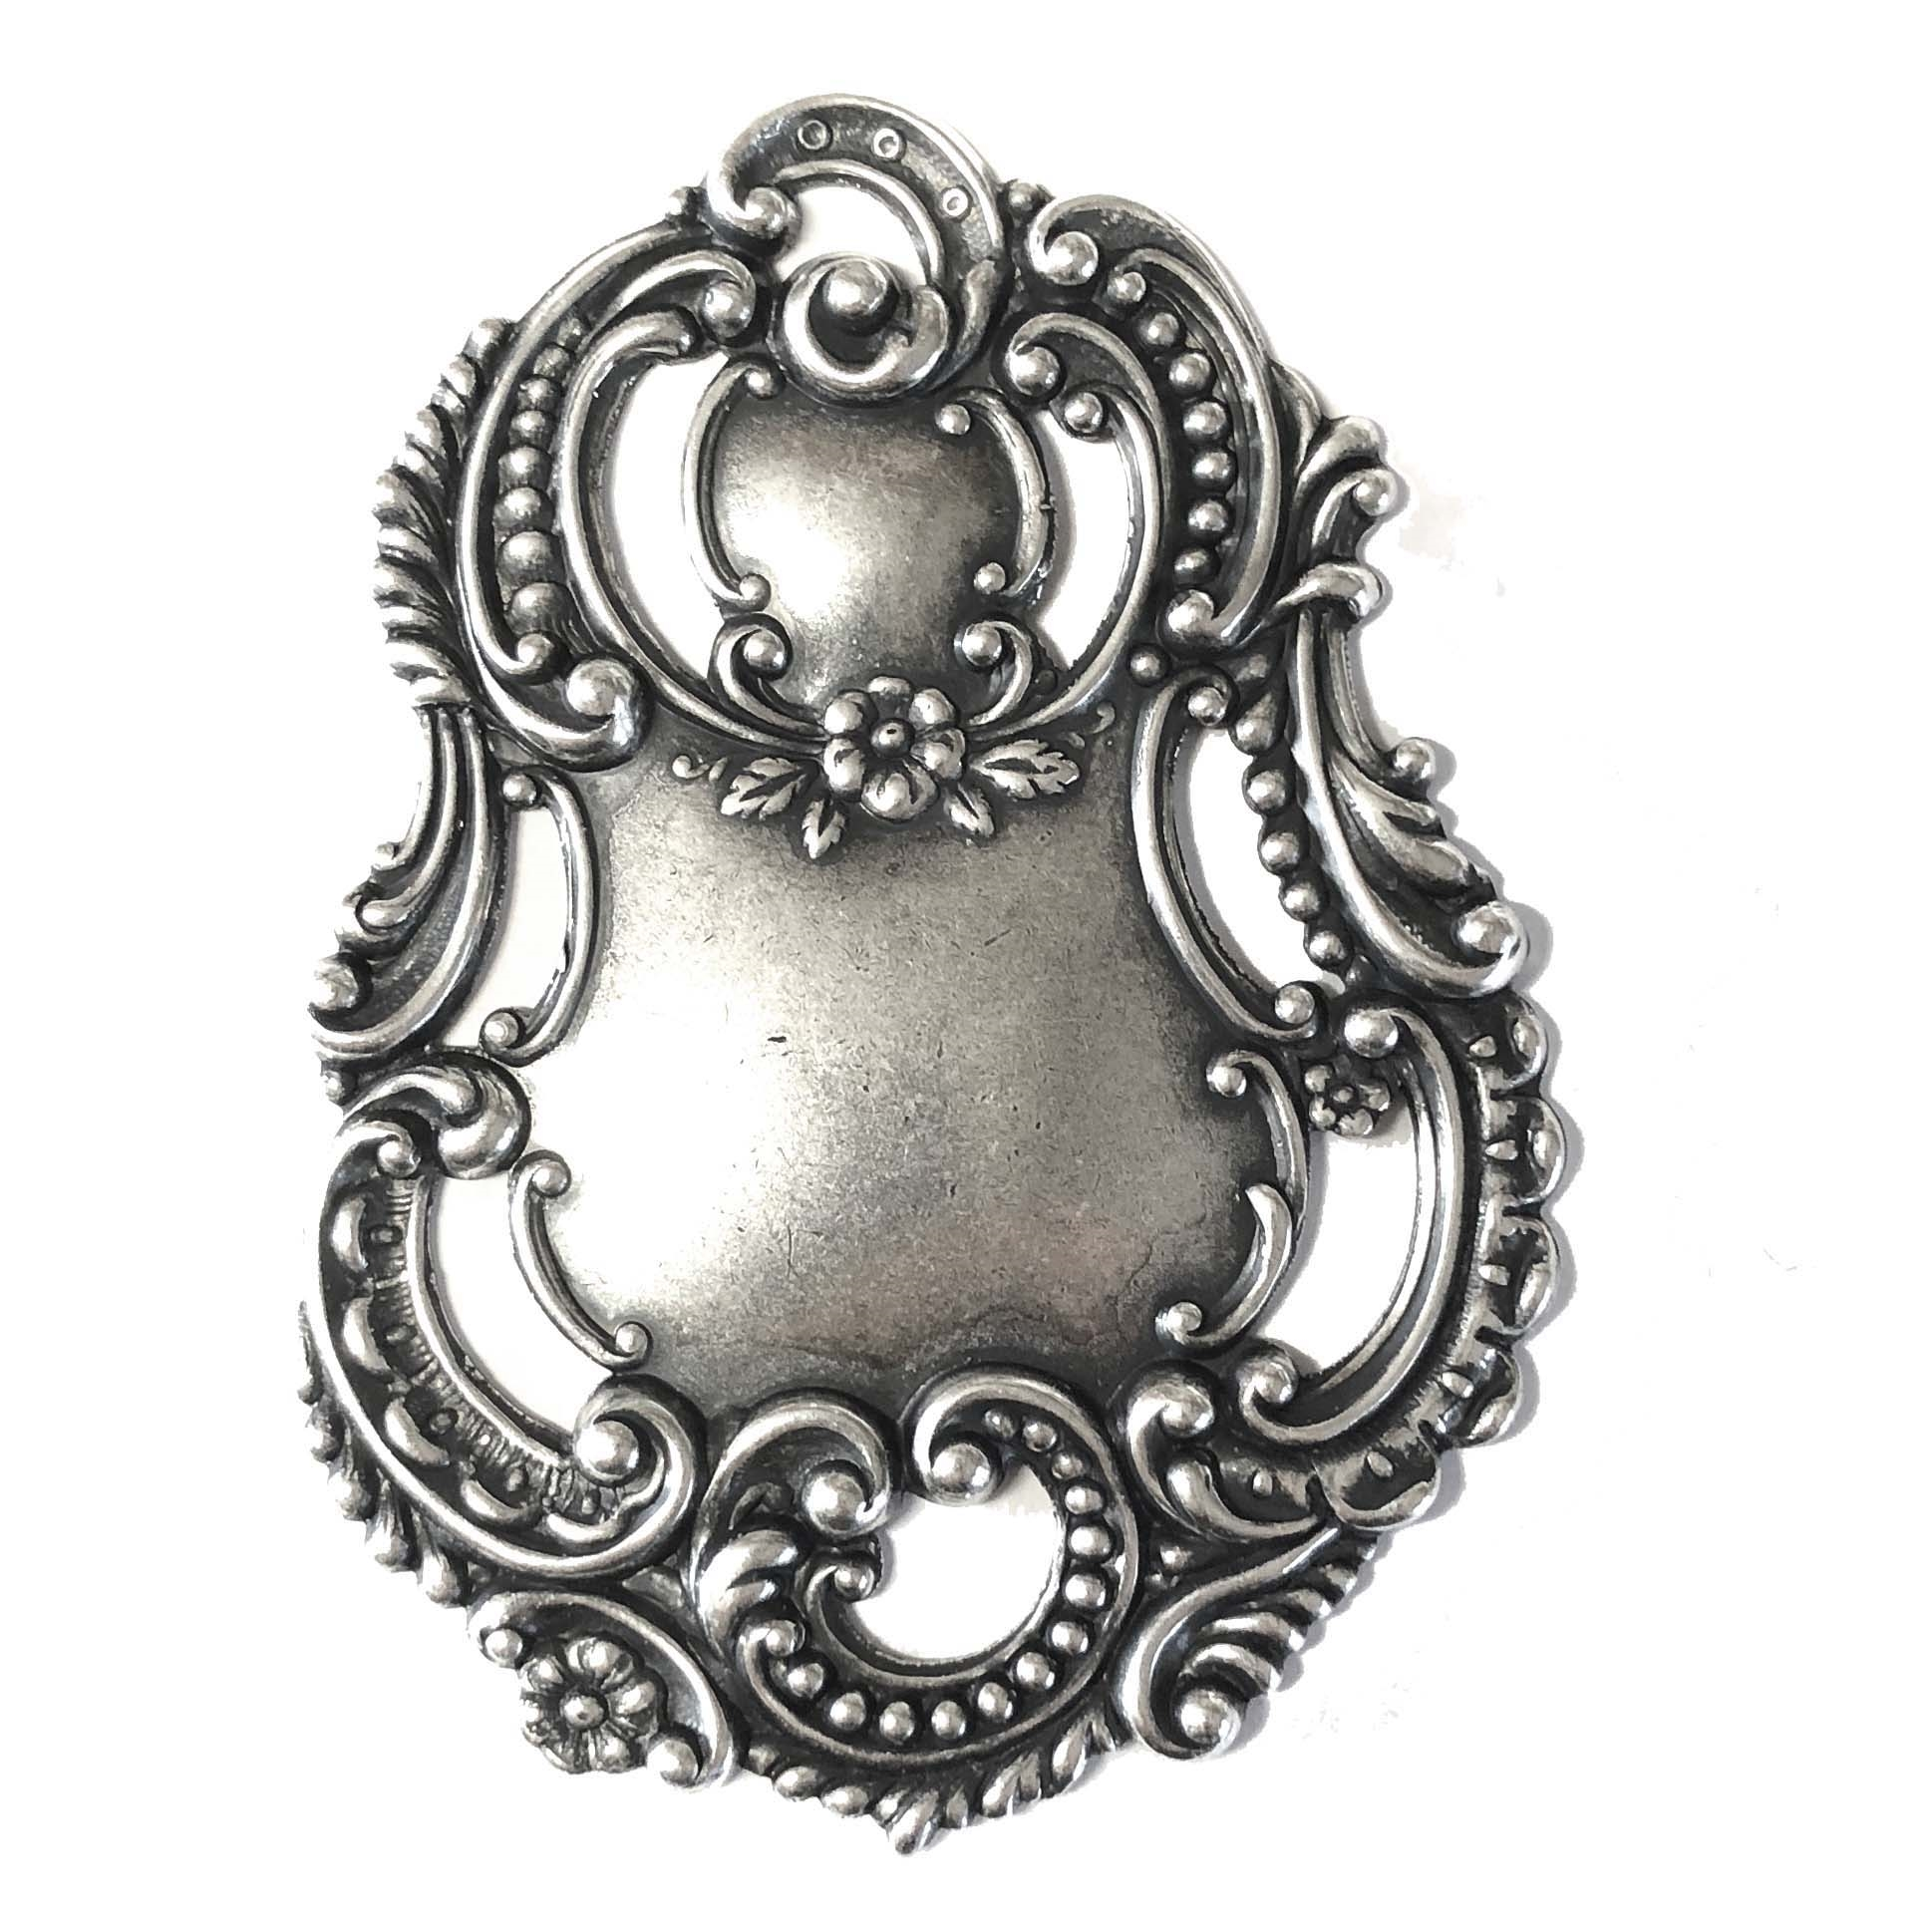 luggage tag, luggage tag stamping, silverplate, vintage style, floral, pendent, silverware, silverplate silverware, 70x51mm, antique silver, us made, nickel free, B'sue Boutiques, jewelry making, vintage supplies, jewelry supplies, jewelry findings,0601